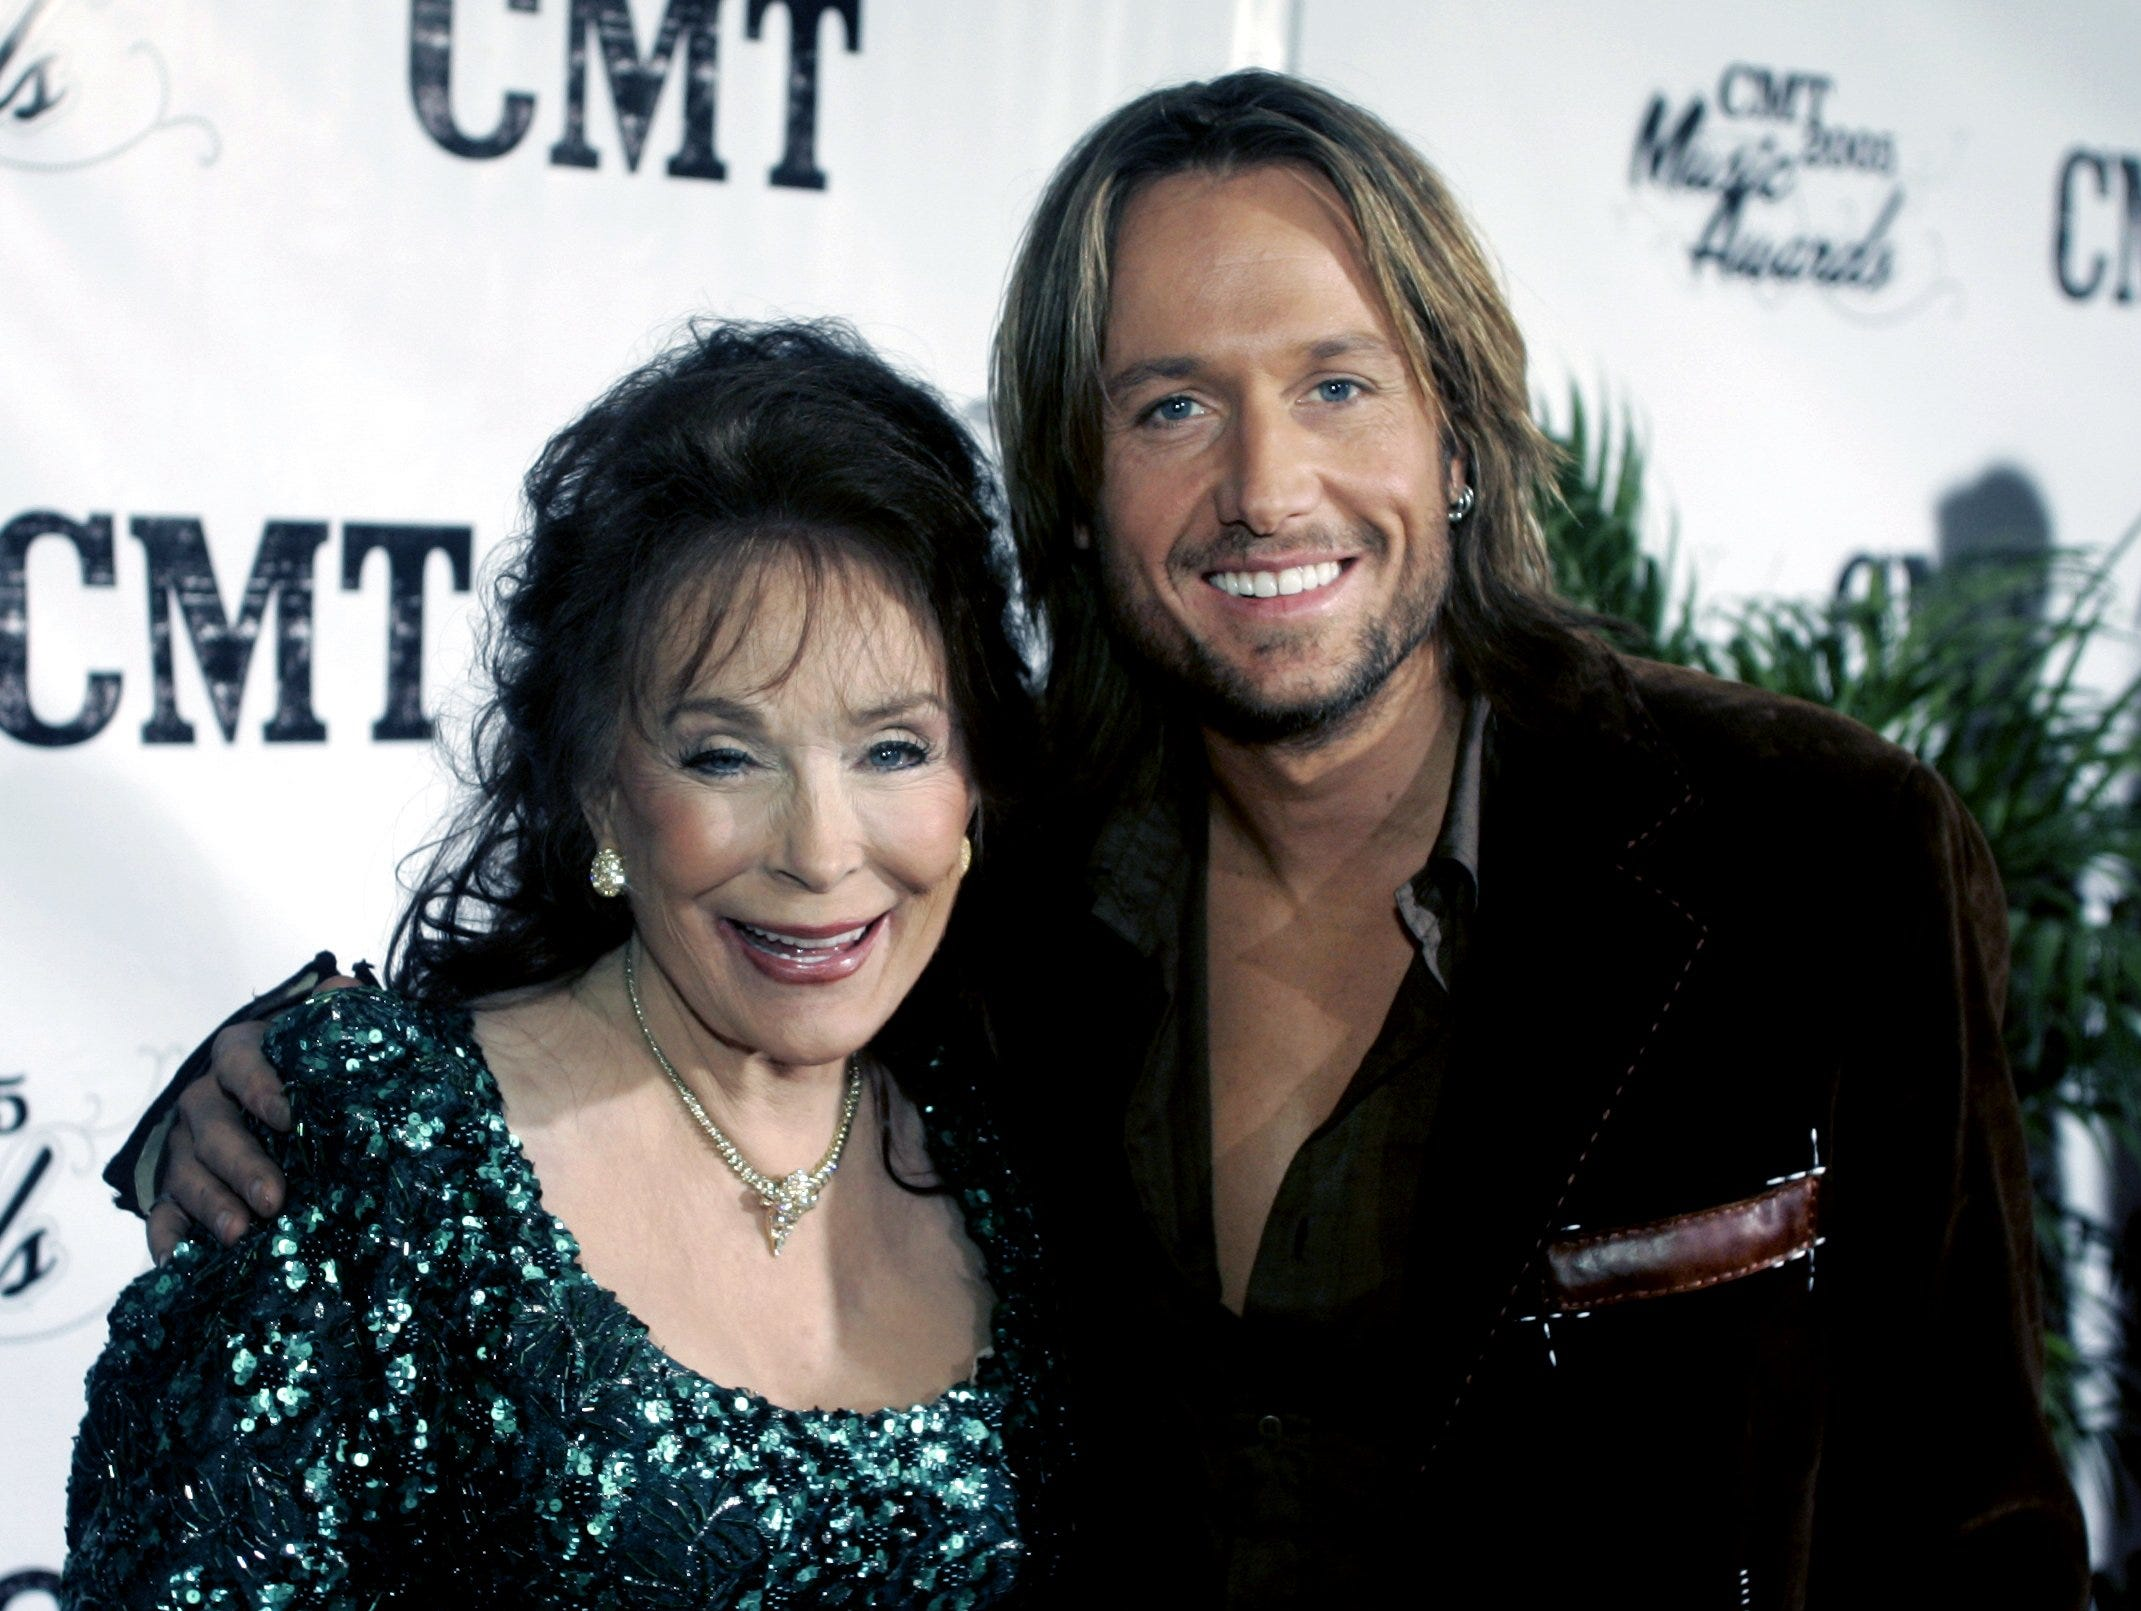 Loretta Lynn, left, and Keith Urban pose together on the red carpet before the CMT Music Awards show at GEC in Nashville March 10, 2005.